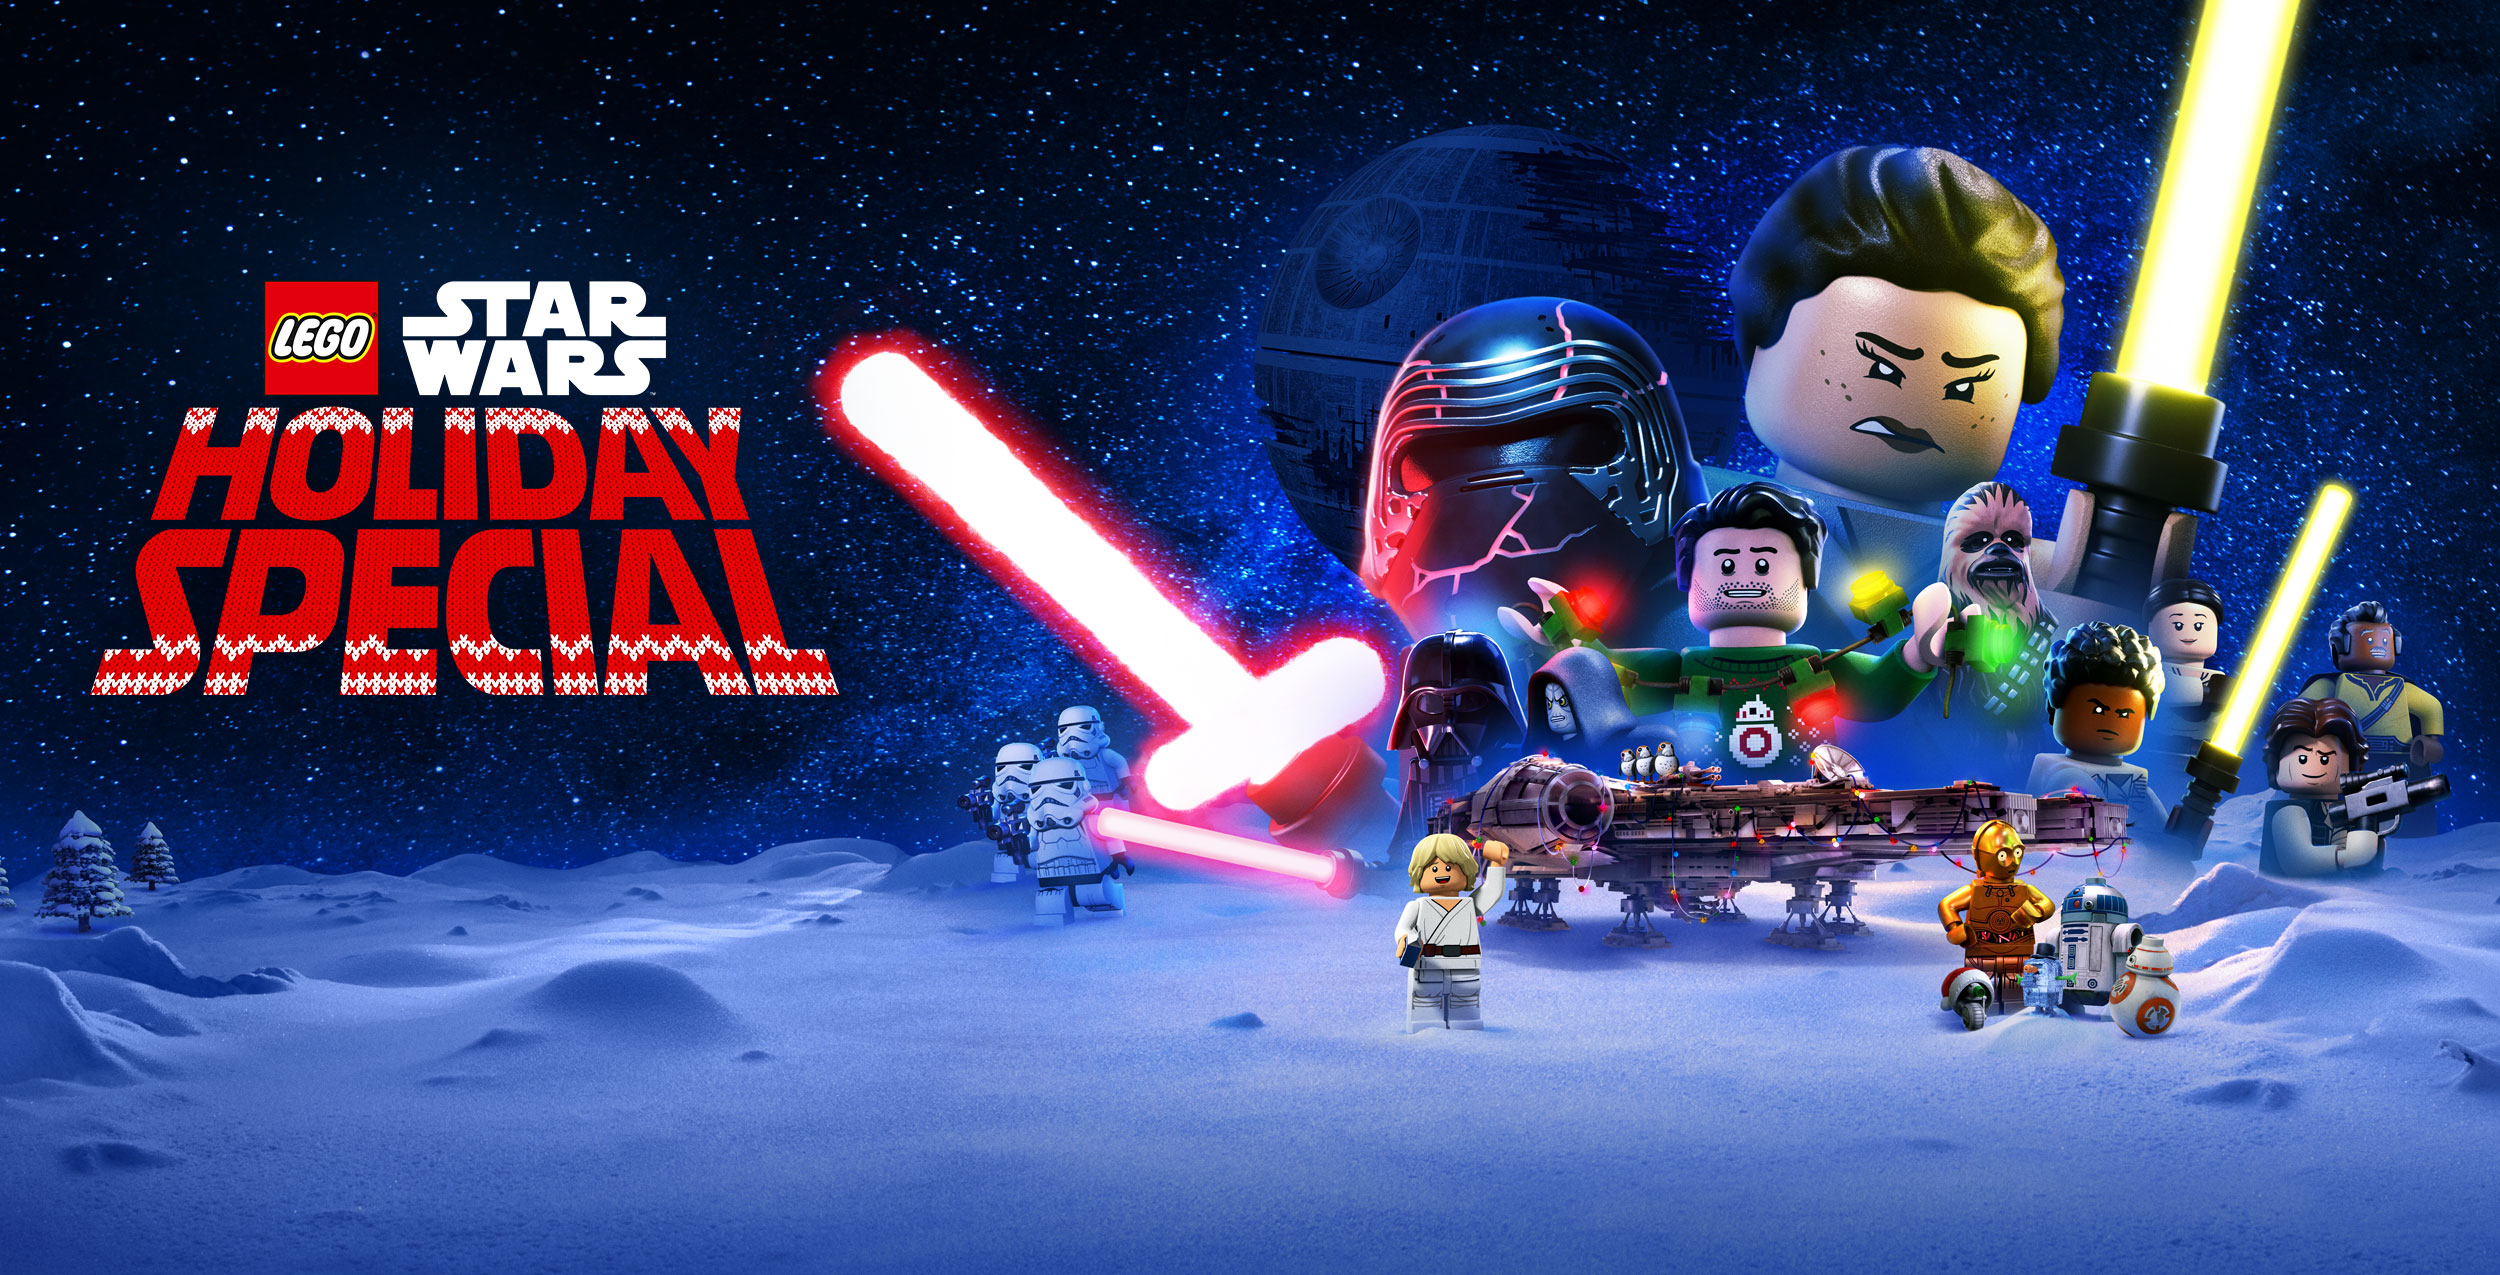 The Lego Star Wars Holiday Special Project